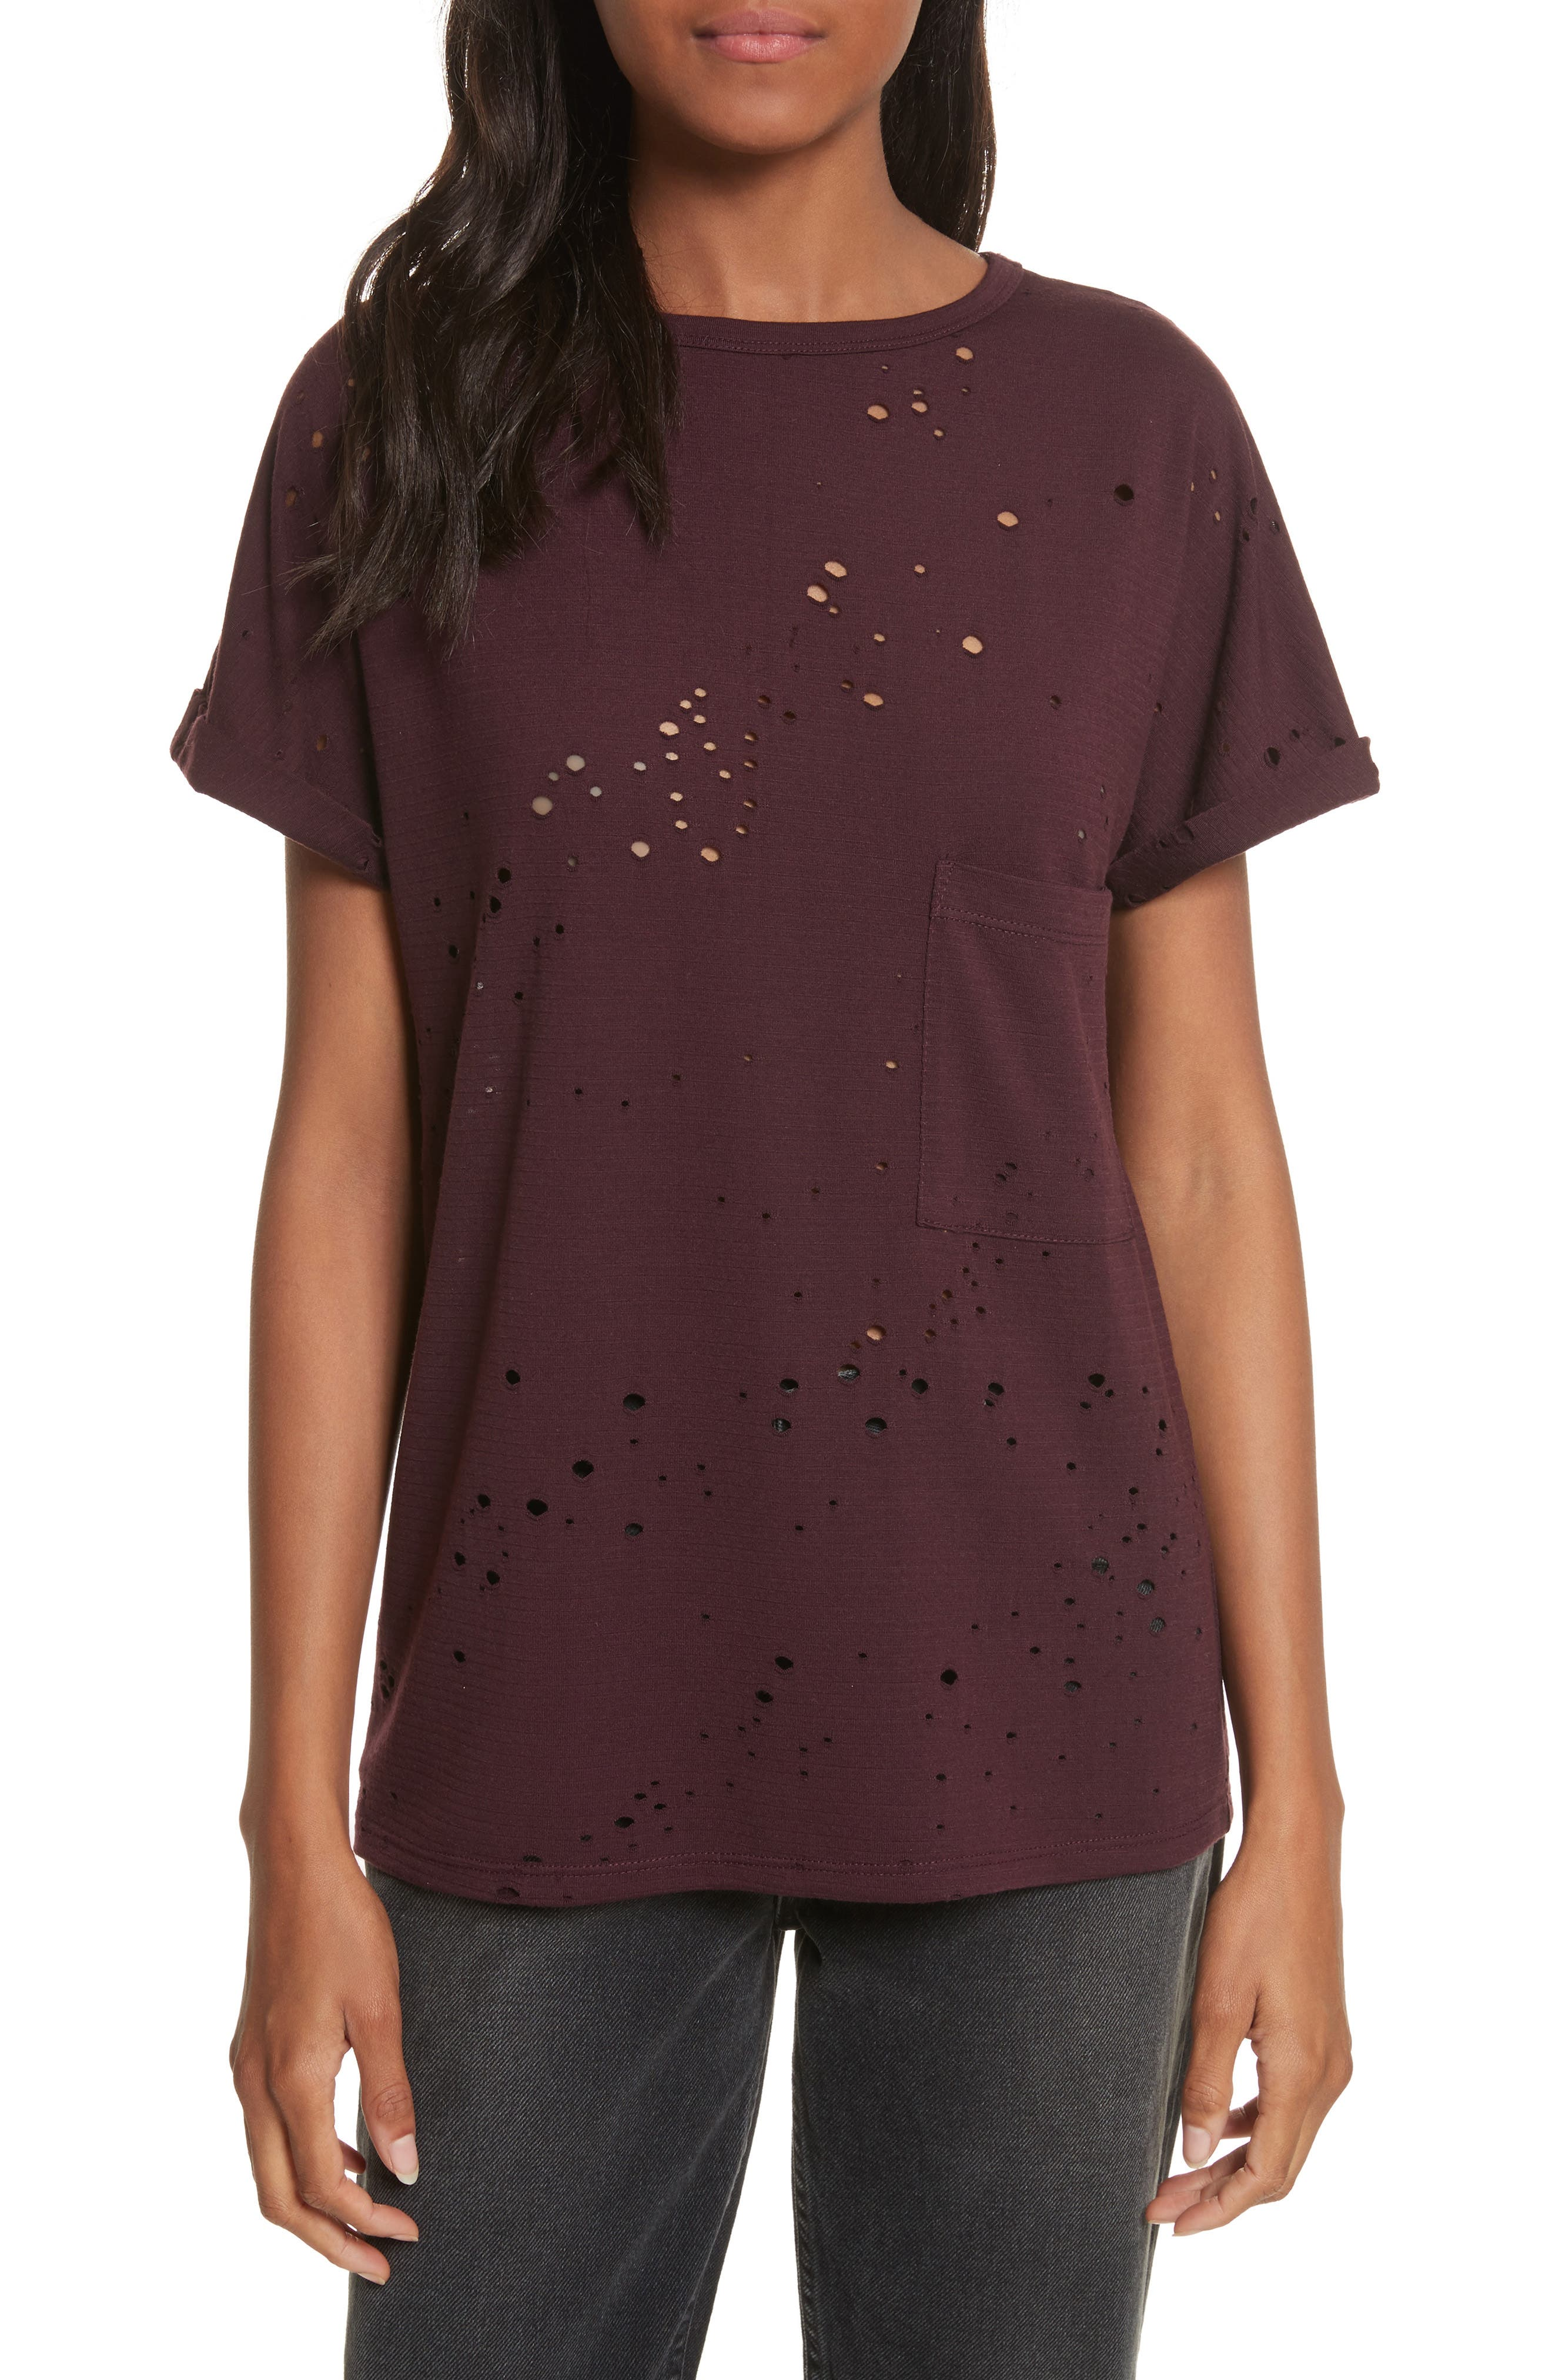 Twenty Waverly Perforated Tee